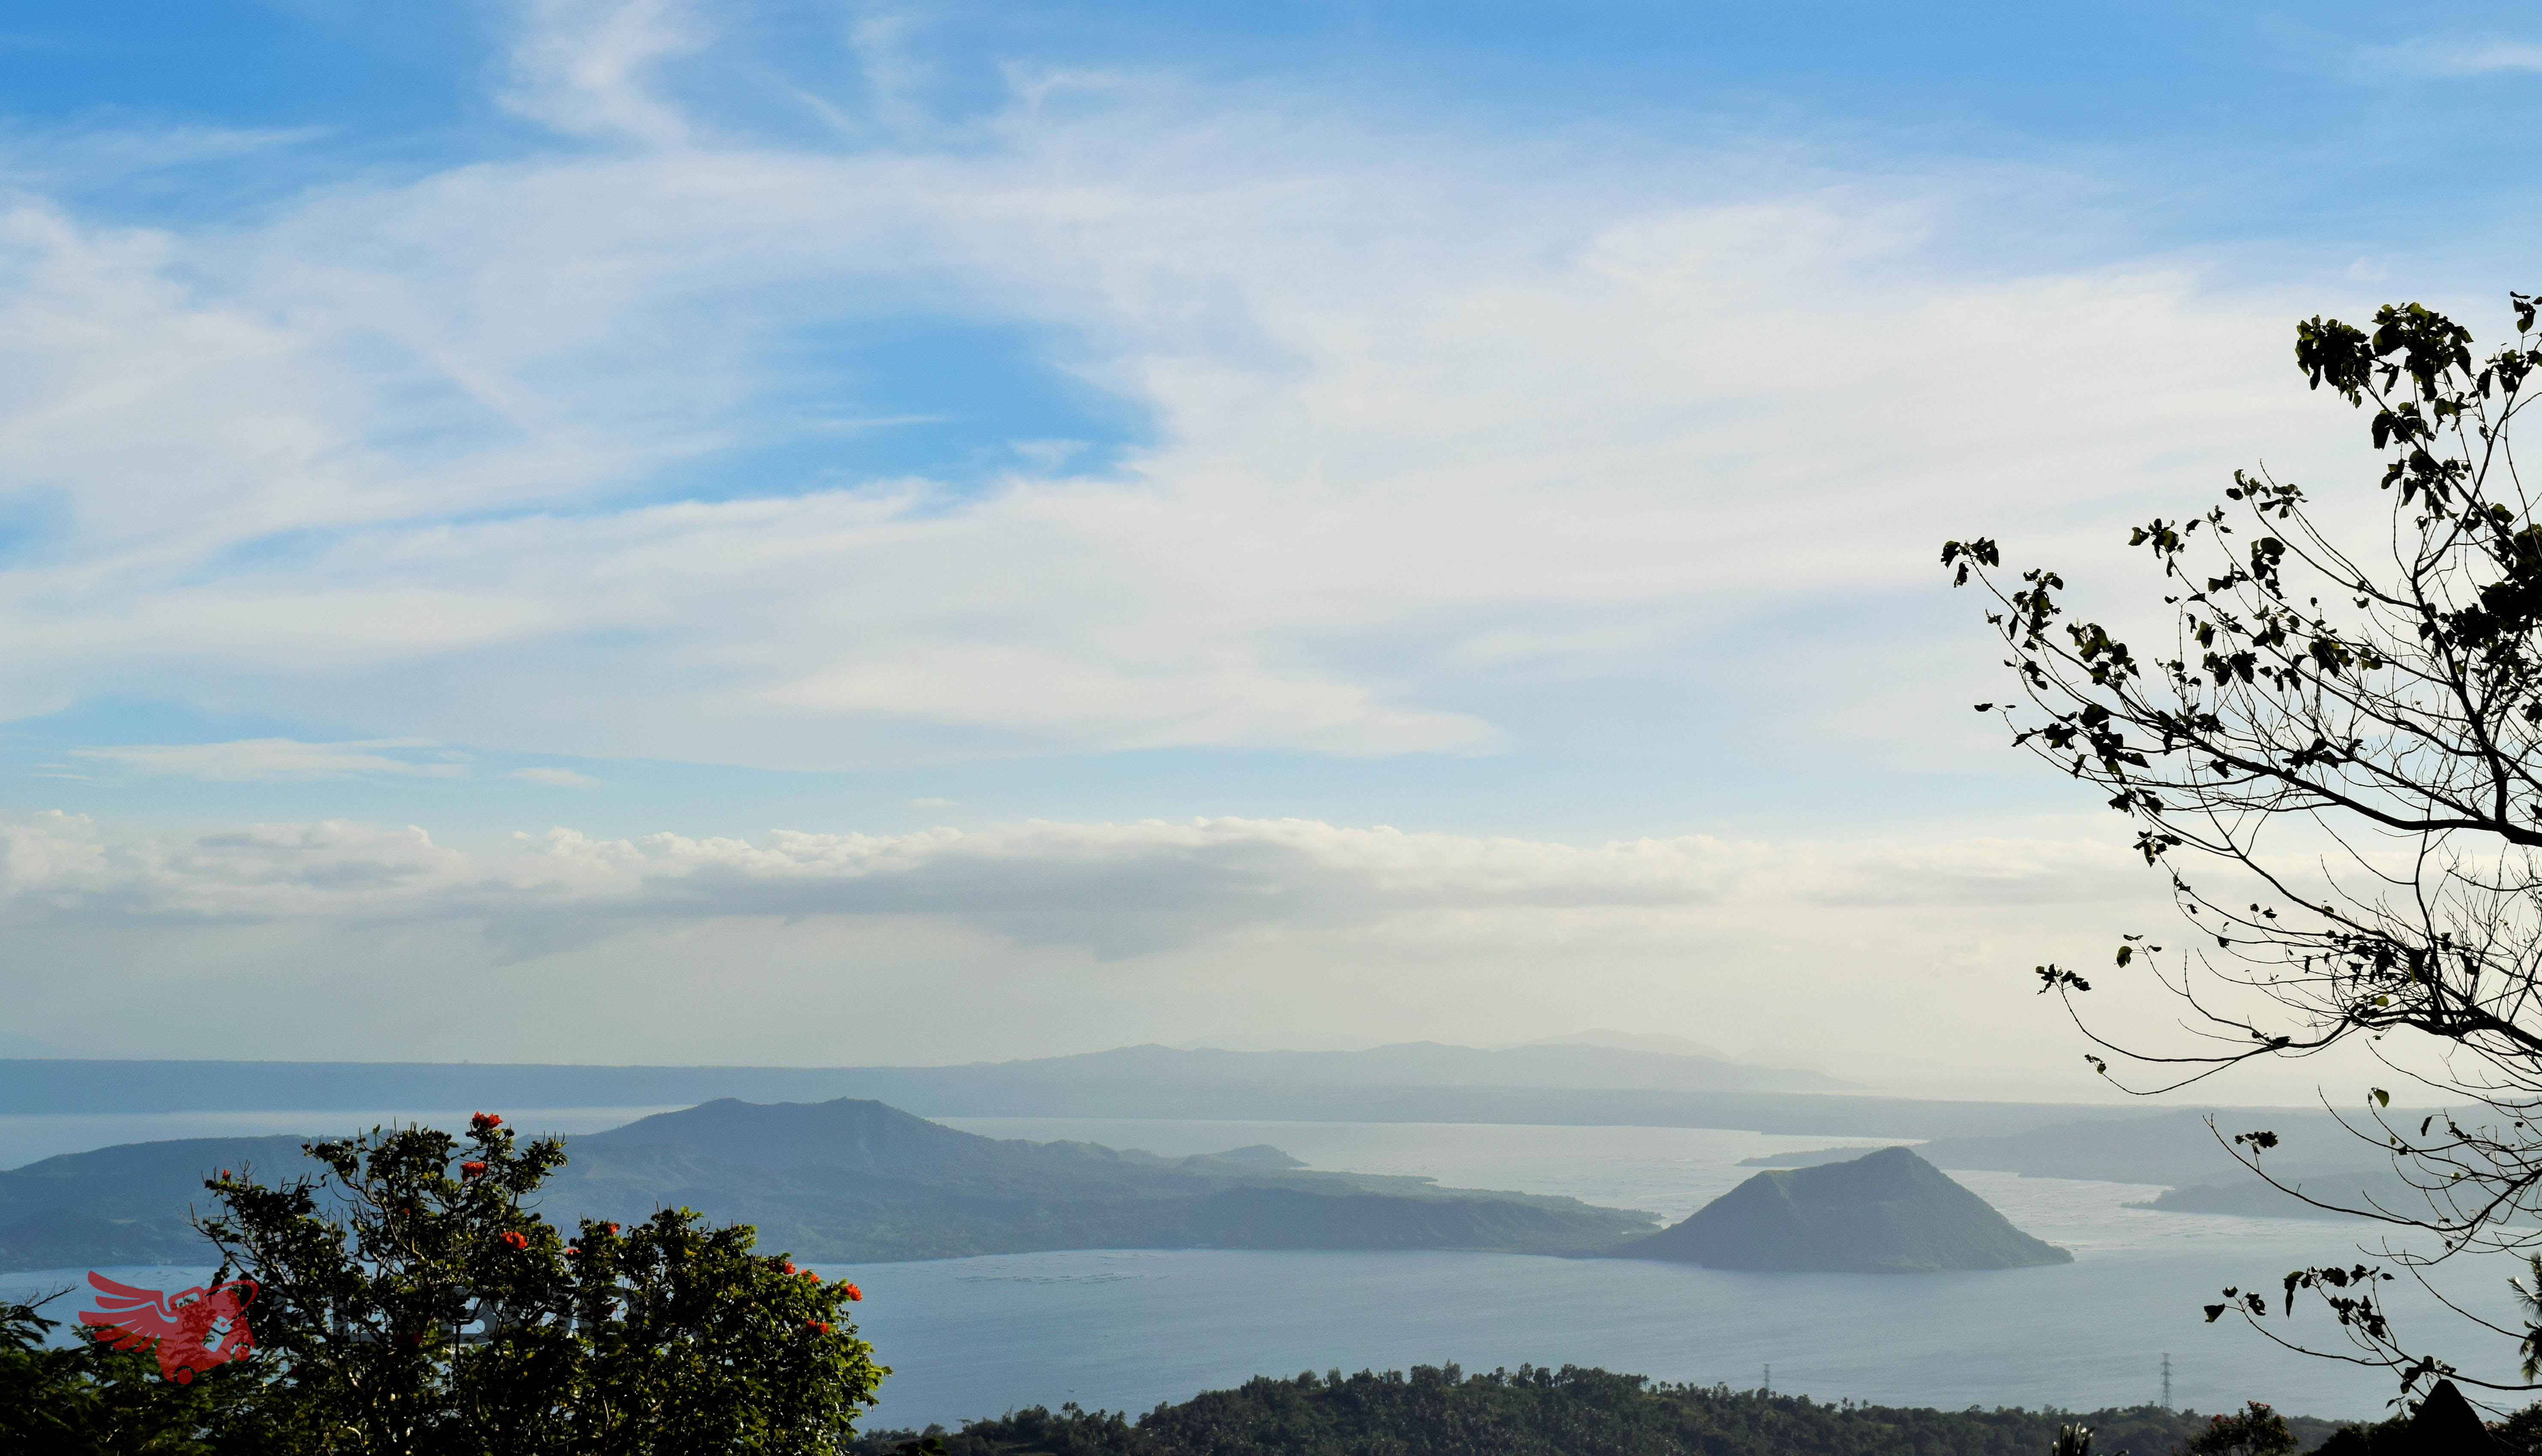 The mystic Taal Volcano has gained a lot of awe and praises from both local and foreign tourists. Flybook Travel and Tours is grateful to have been part of ATTA Calabarzon is organizing a complimentary tours for the delegates of APEC Summit on March 2015.